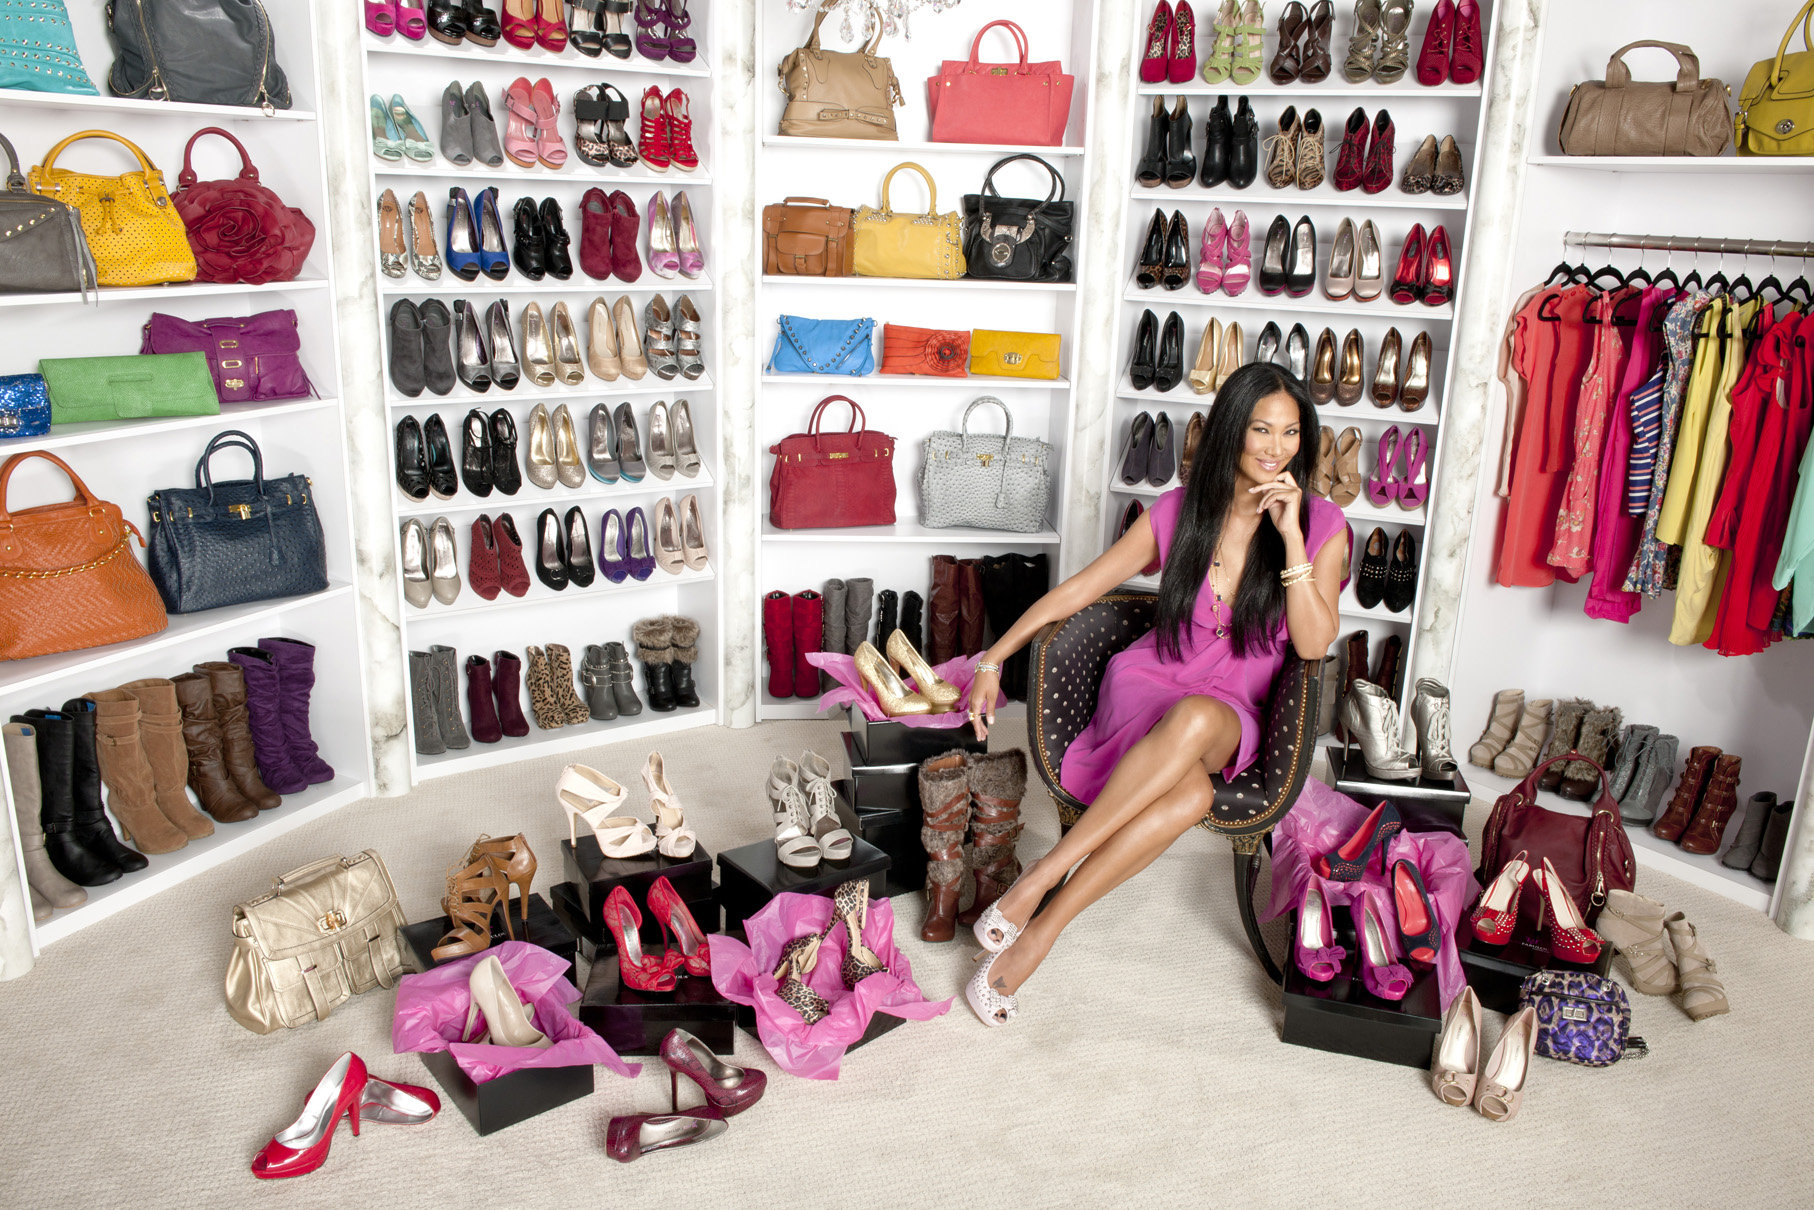 Kimora Lee Simmons is a fashion model, author, and former president